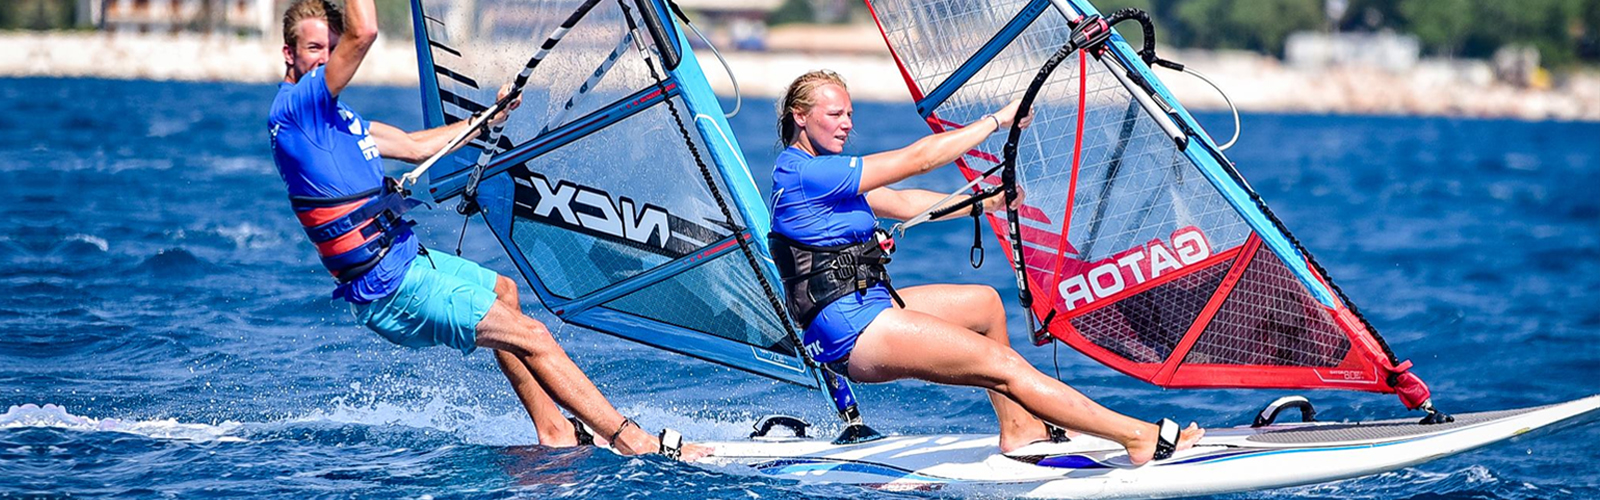 windsurfing-pair